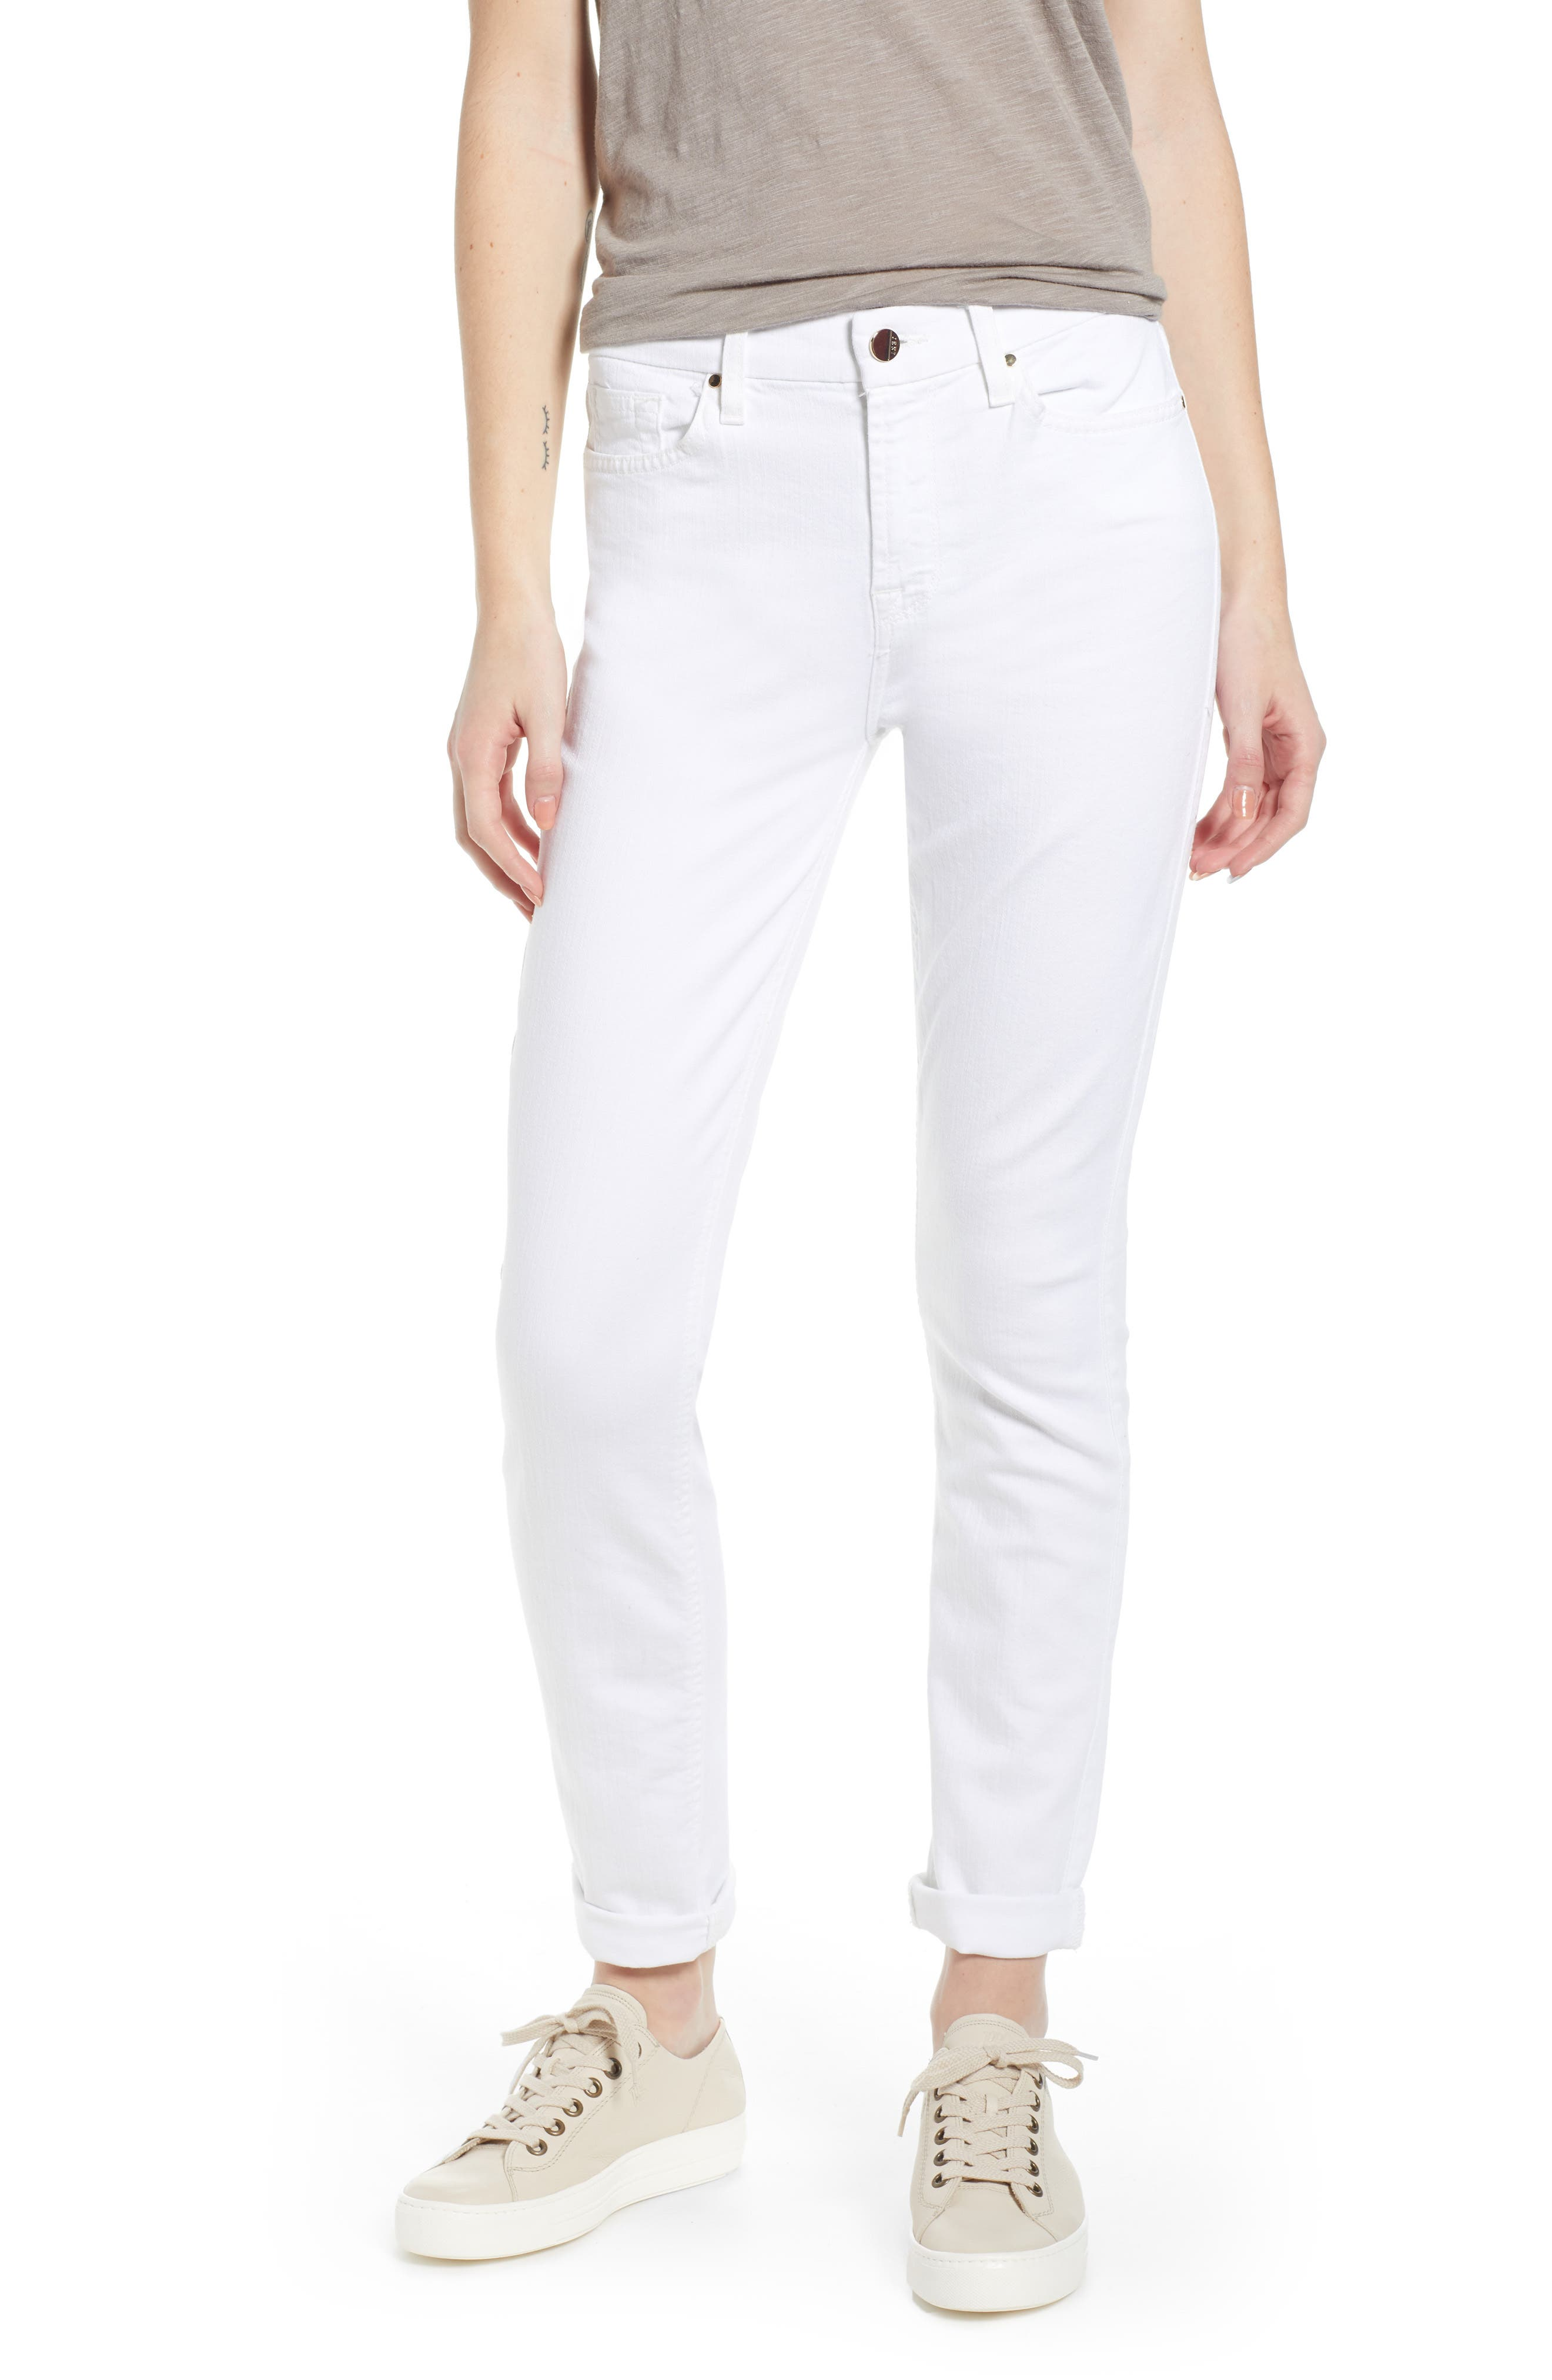 JEN7 BY 7 FOR ALL MANKIND Stretch Skinny Jeans, Main, color, WHITE